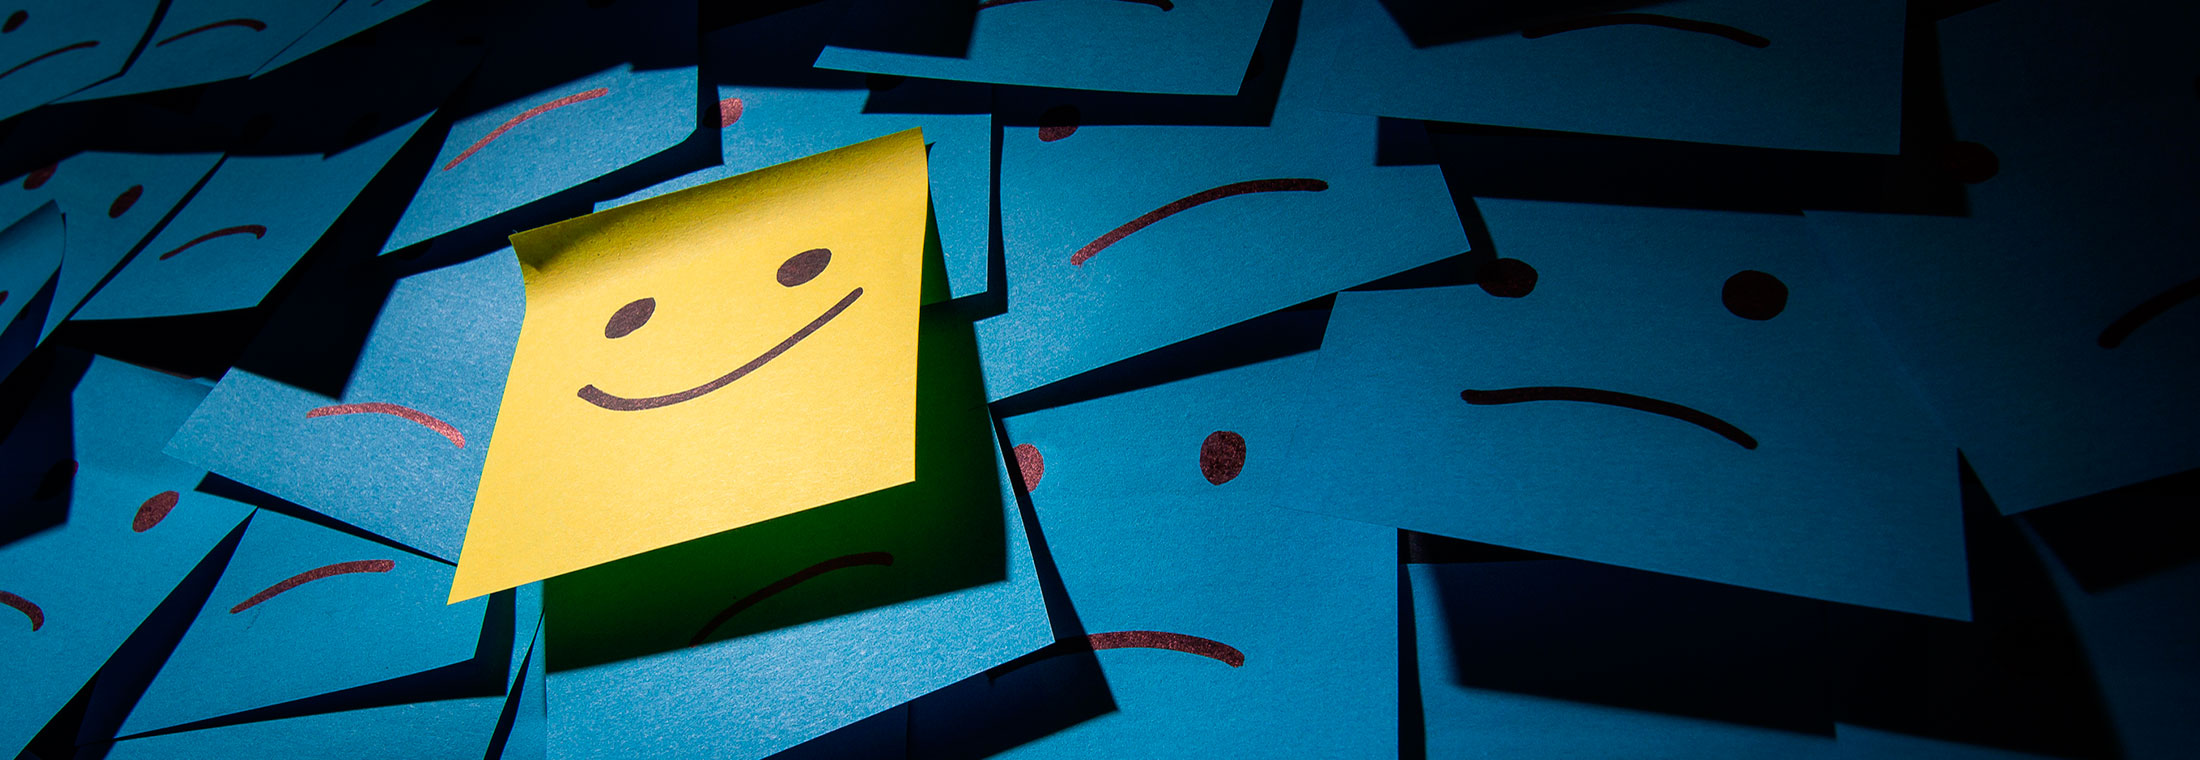 Sentiment Analysis: How Does It Work? Why Should We Use It? | Brandwatch